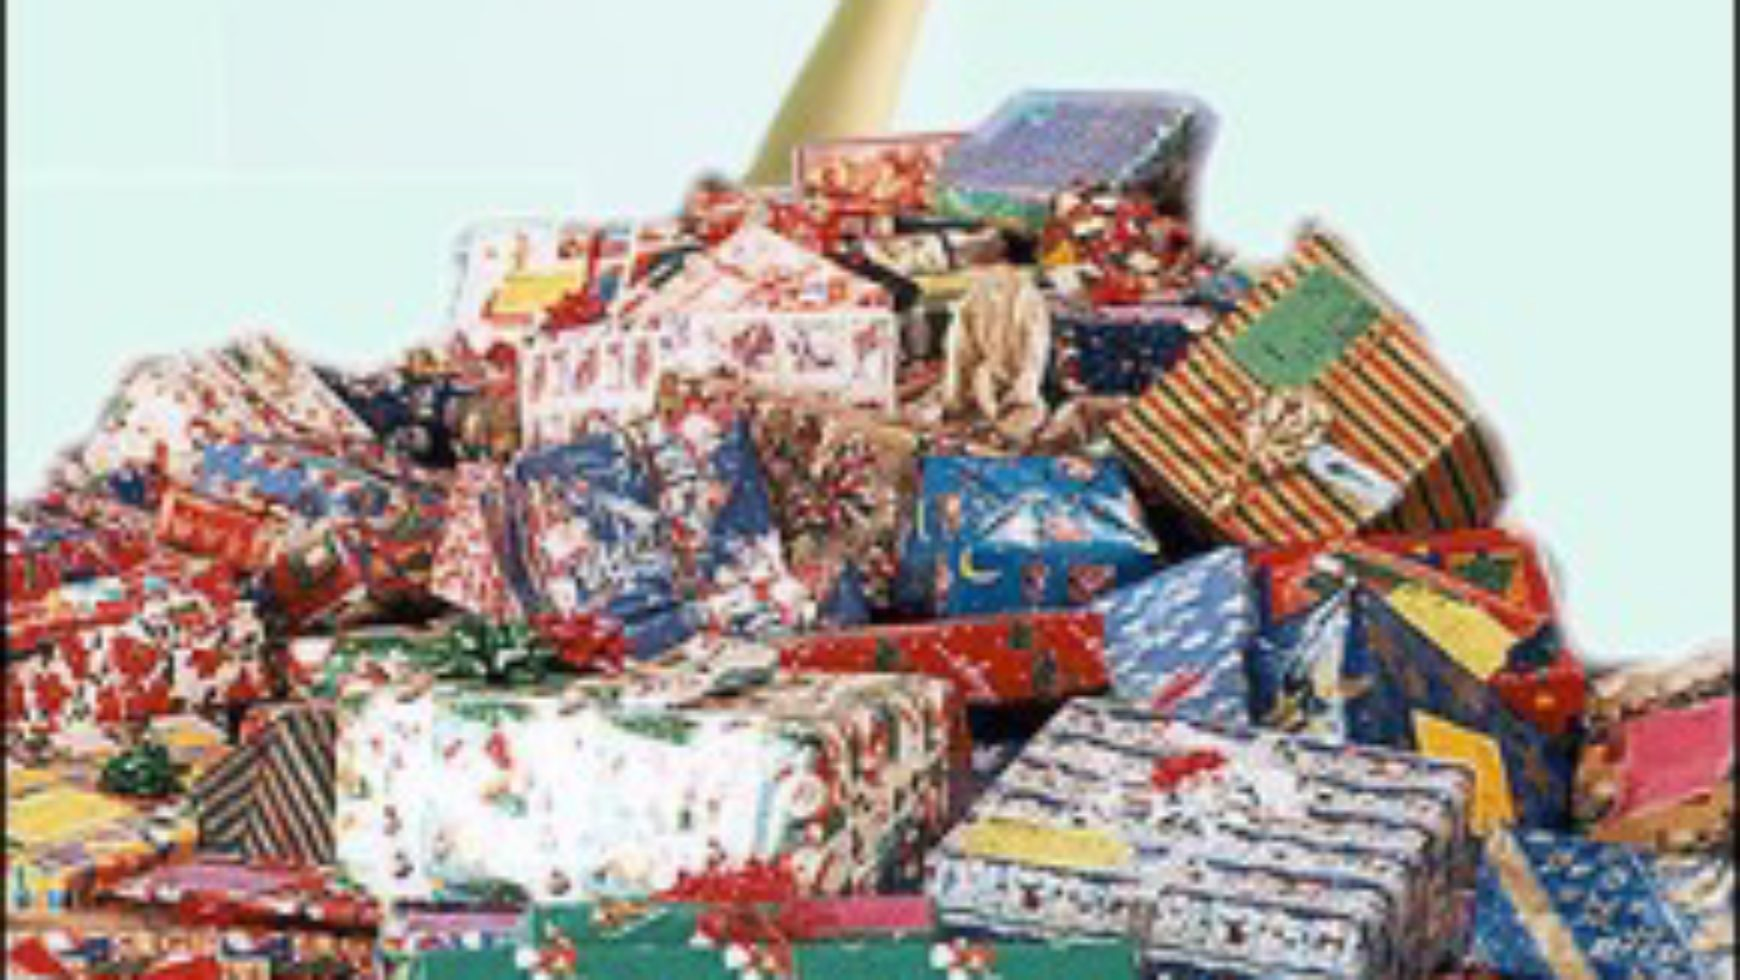 Too Many Presents for Children Could Lead to Materialistic Attitudes in Adulthood